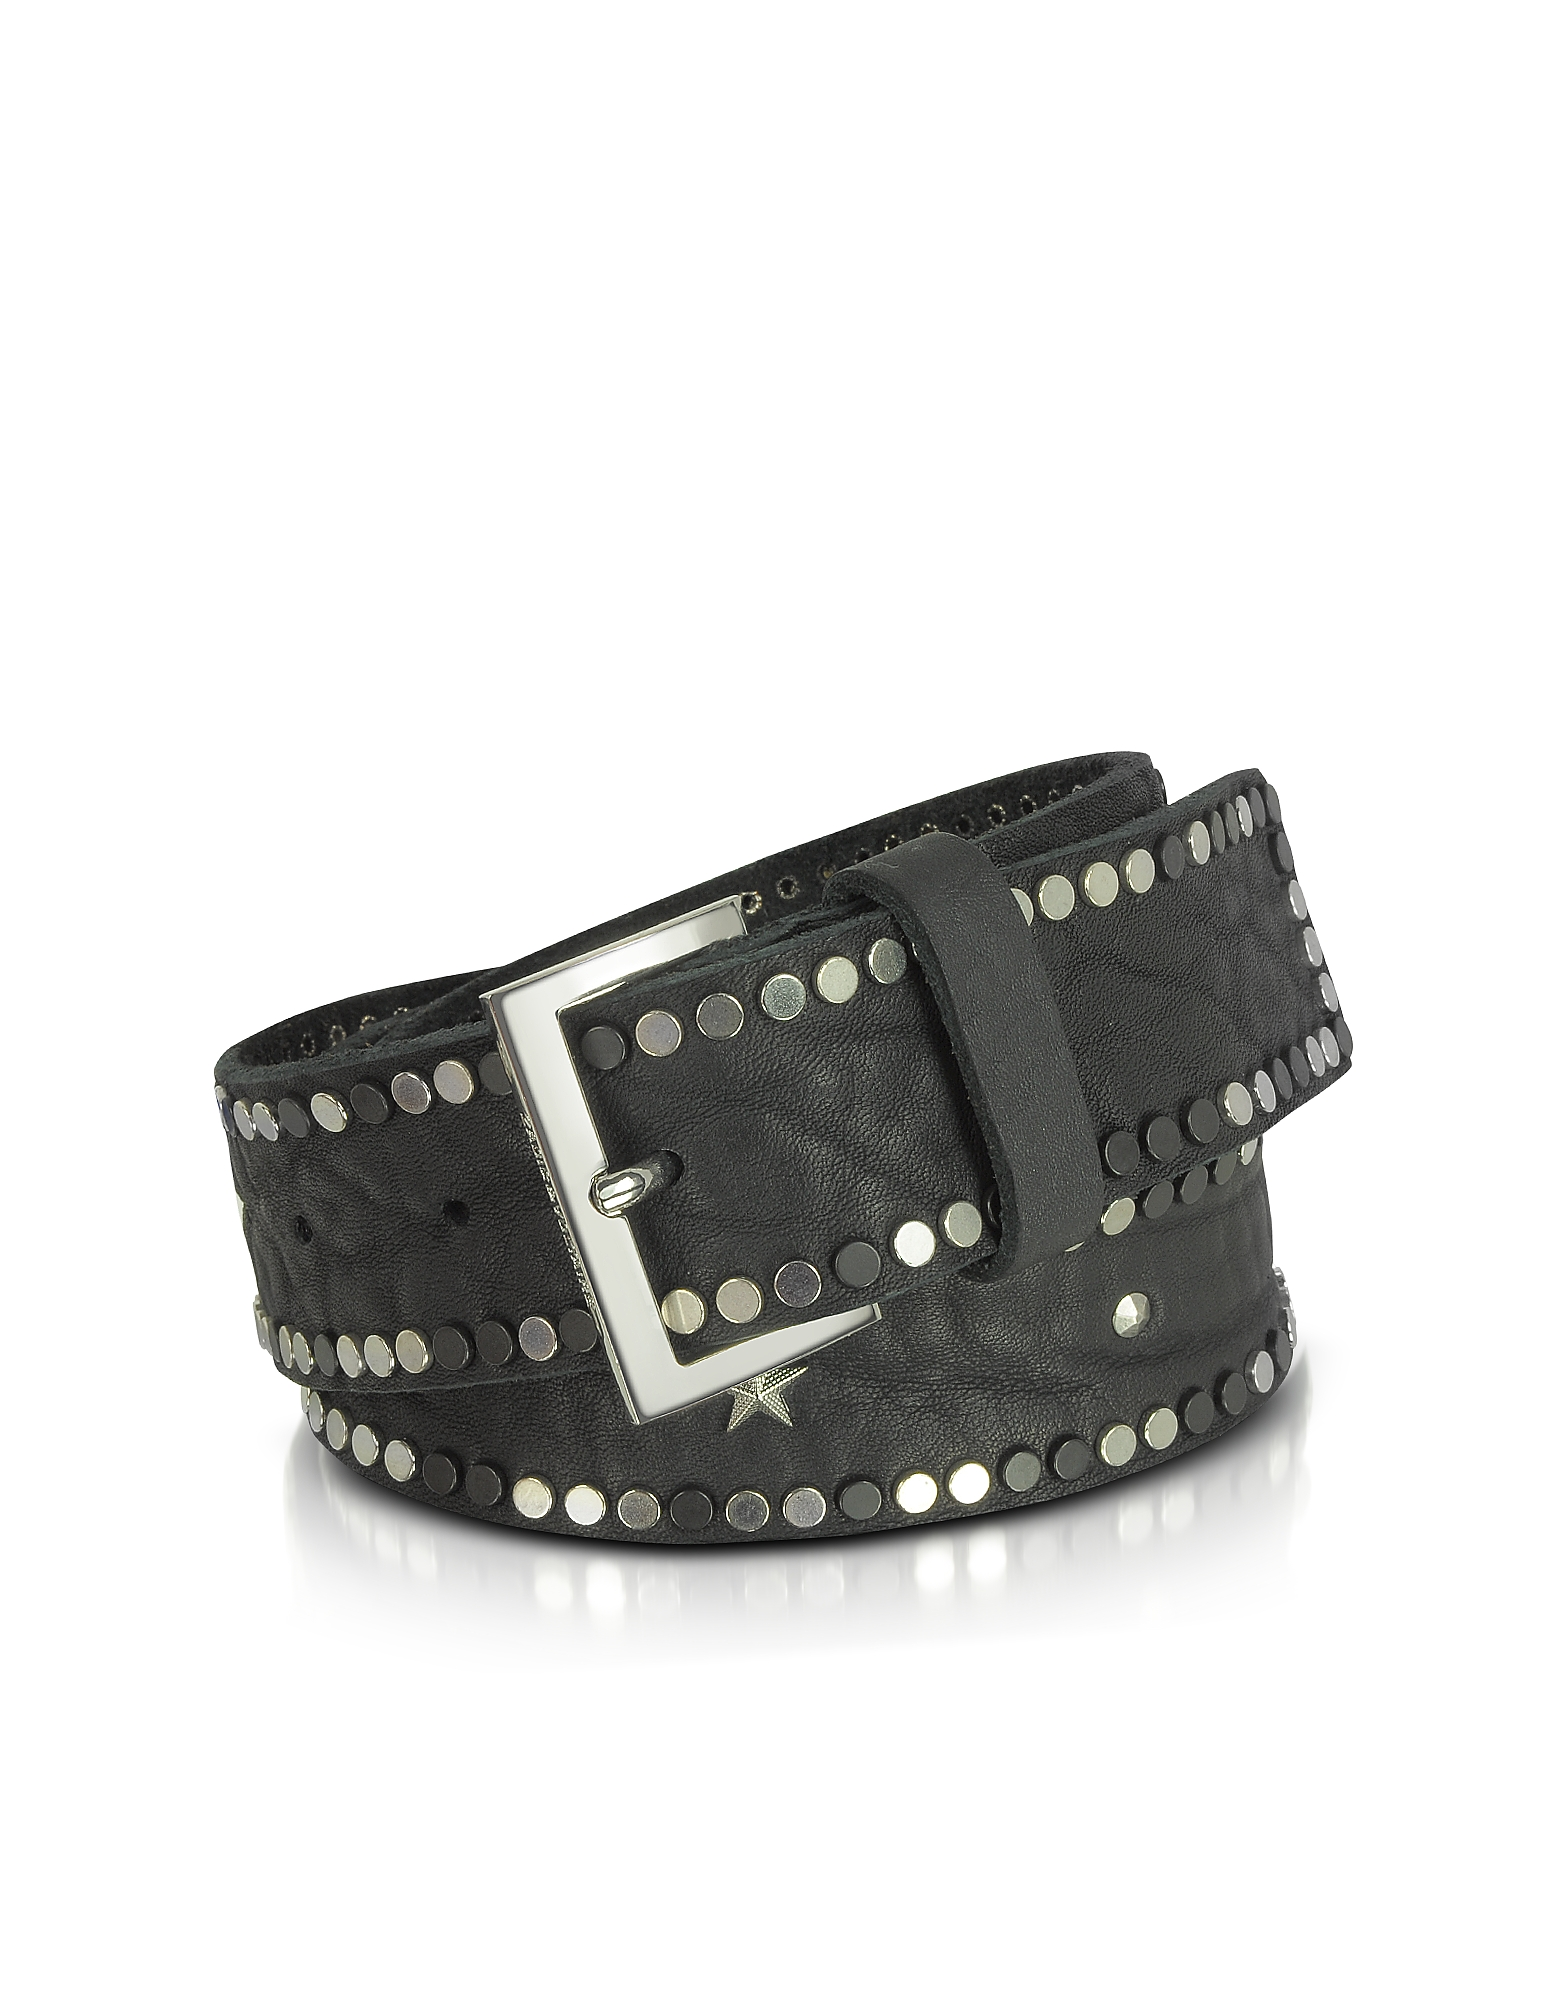 Zadig & Voltaire Women's Belts, Black Studded Leather Starlight Belt